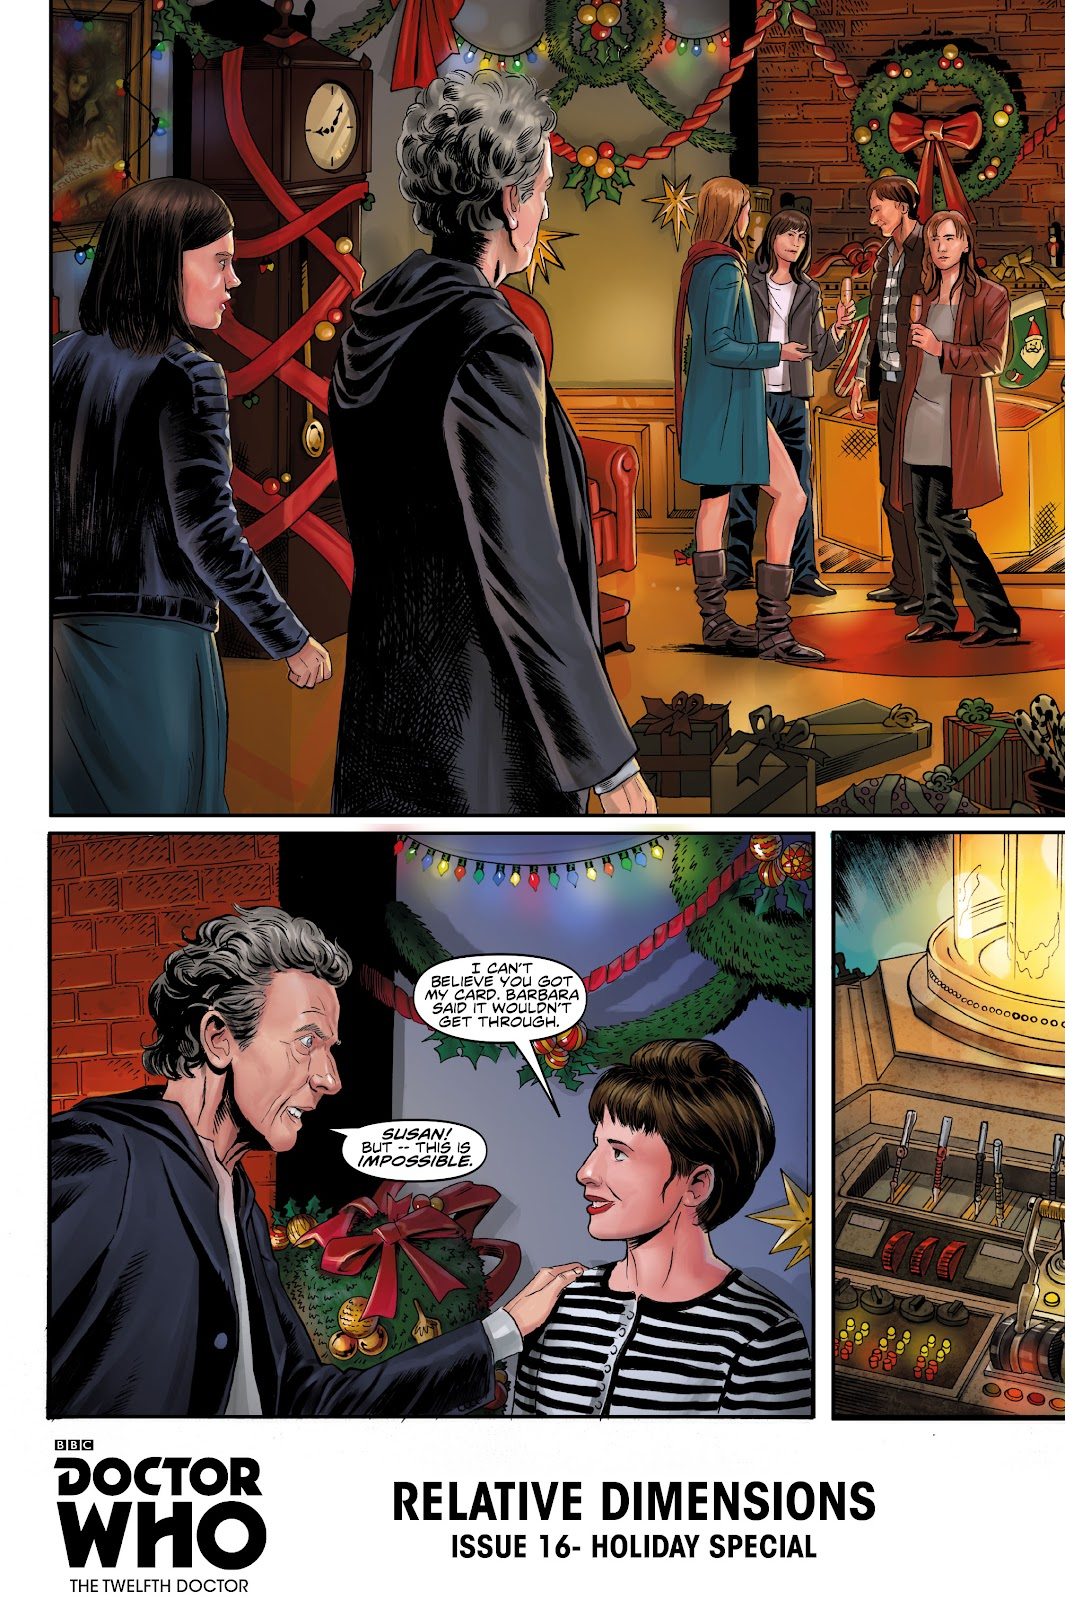 11th and 12th doctor meet